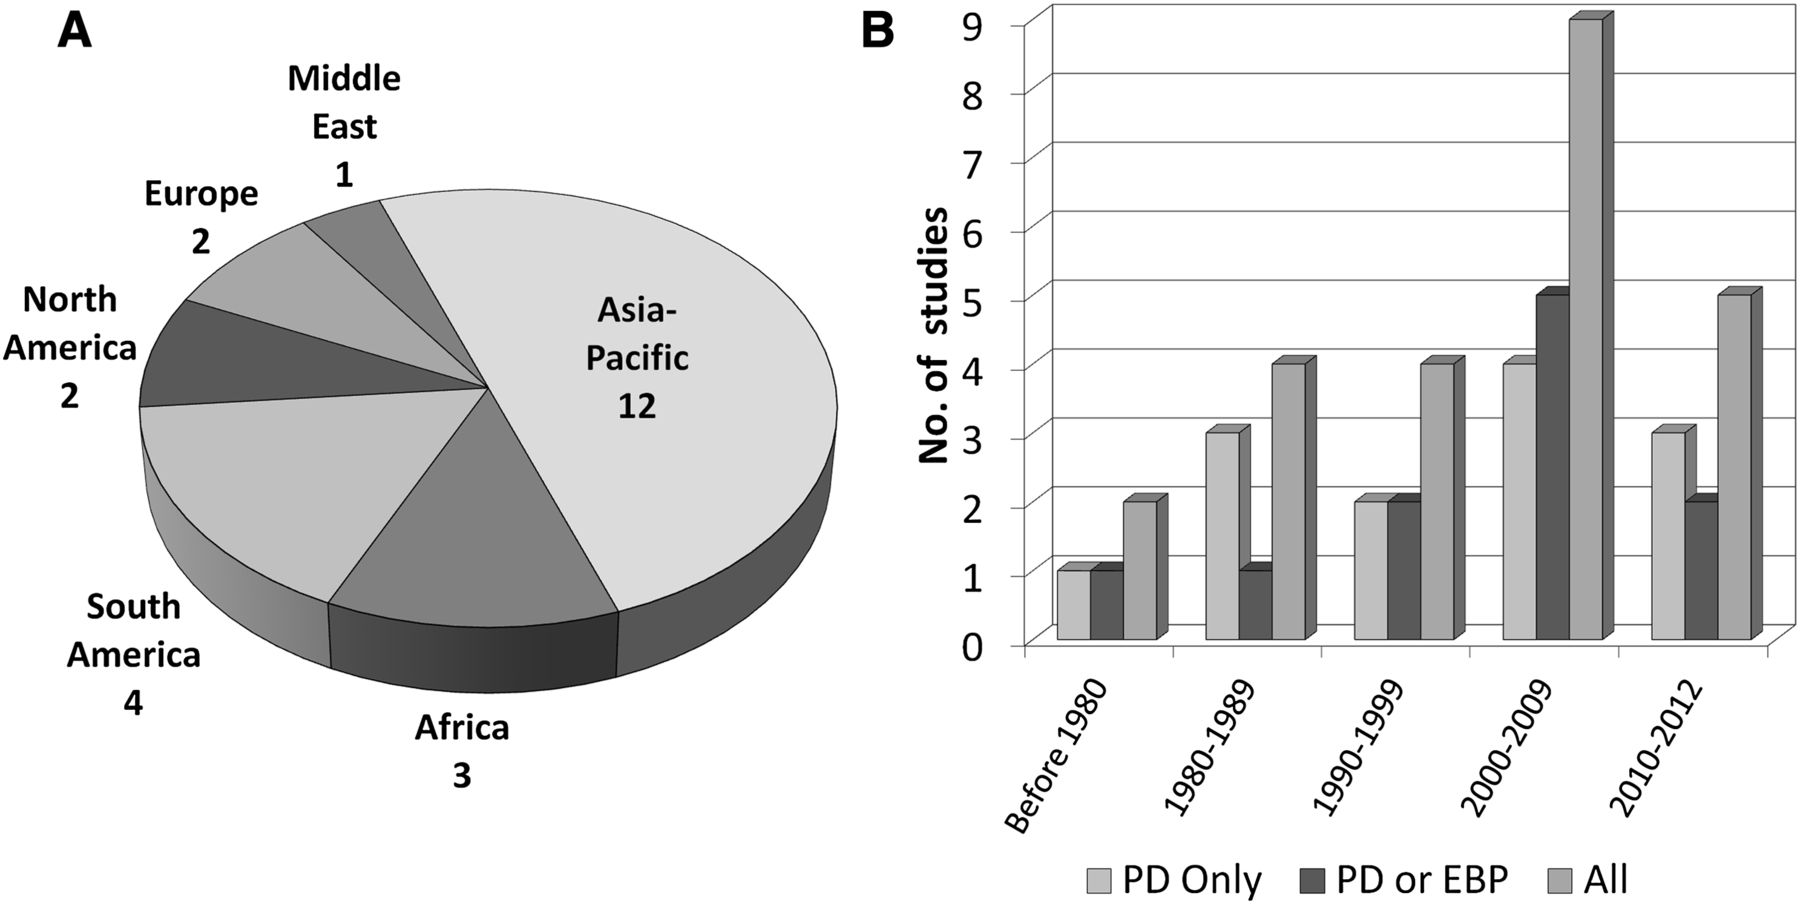 Use of Peritoneal Dialysis in AKI: A Systematic Review | American